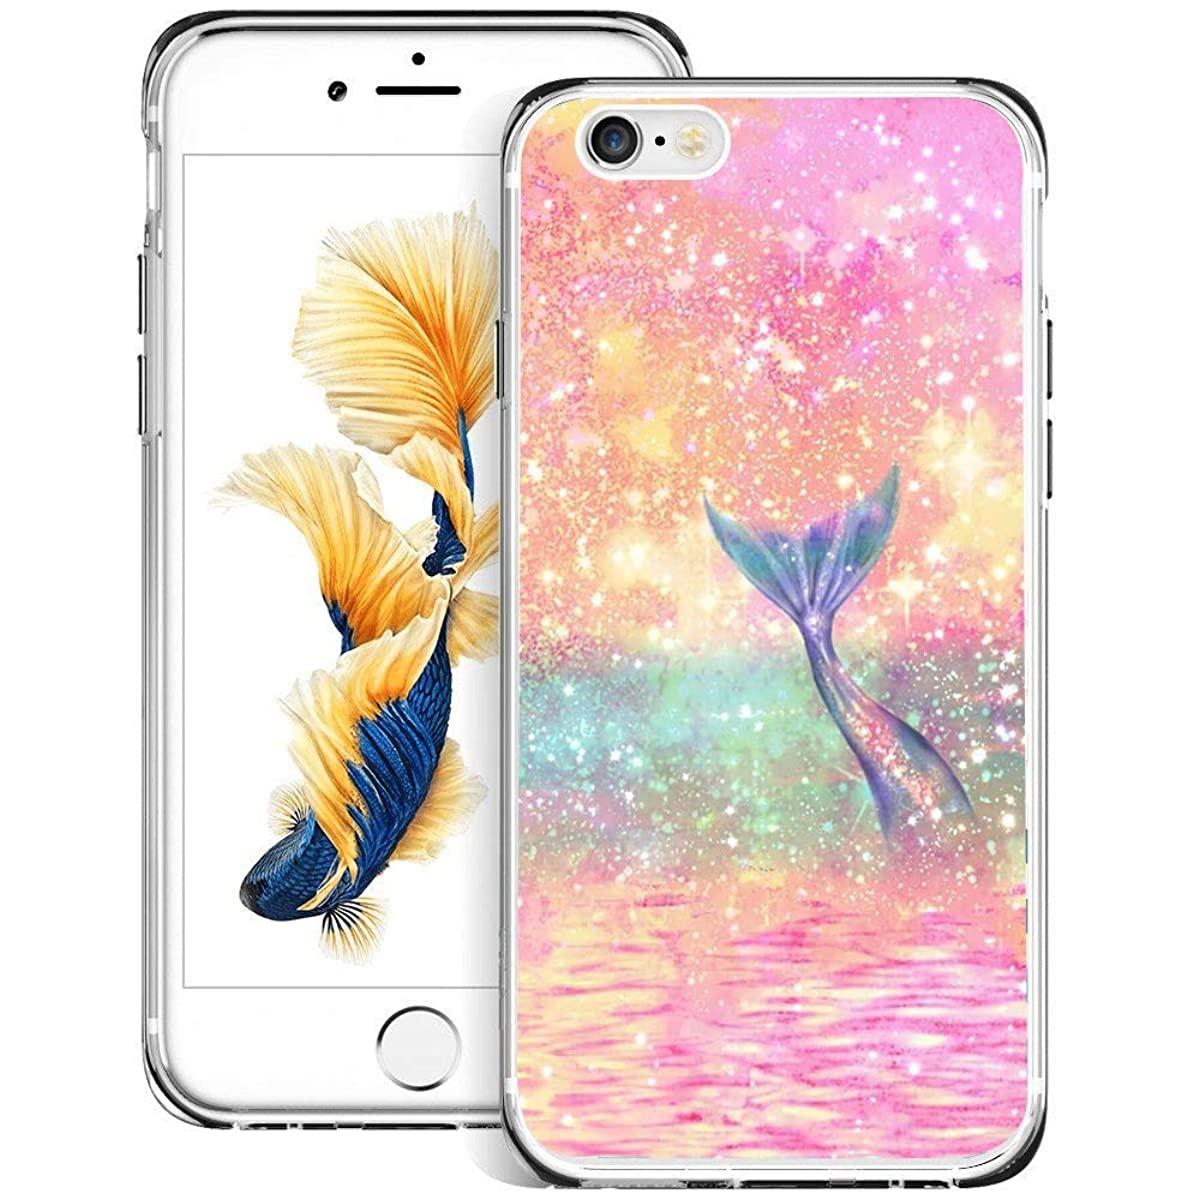 Christy Mathisop Series Pink Rainbow Fish Tail Pattern iPhone 6/6S Plus Phone Case ,Clear Scratch-Resistant Shock Absorption Flexible Protective CoveriPhone 6/6S Plus case Glitter Mermaid